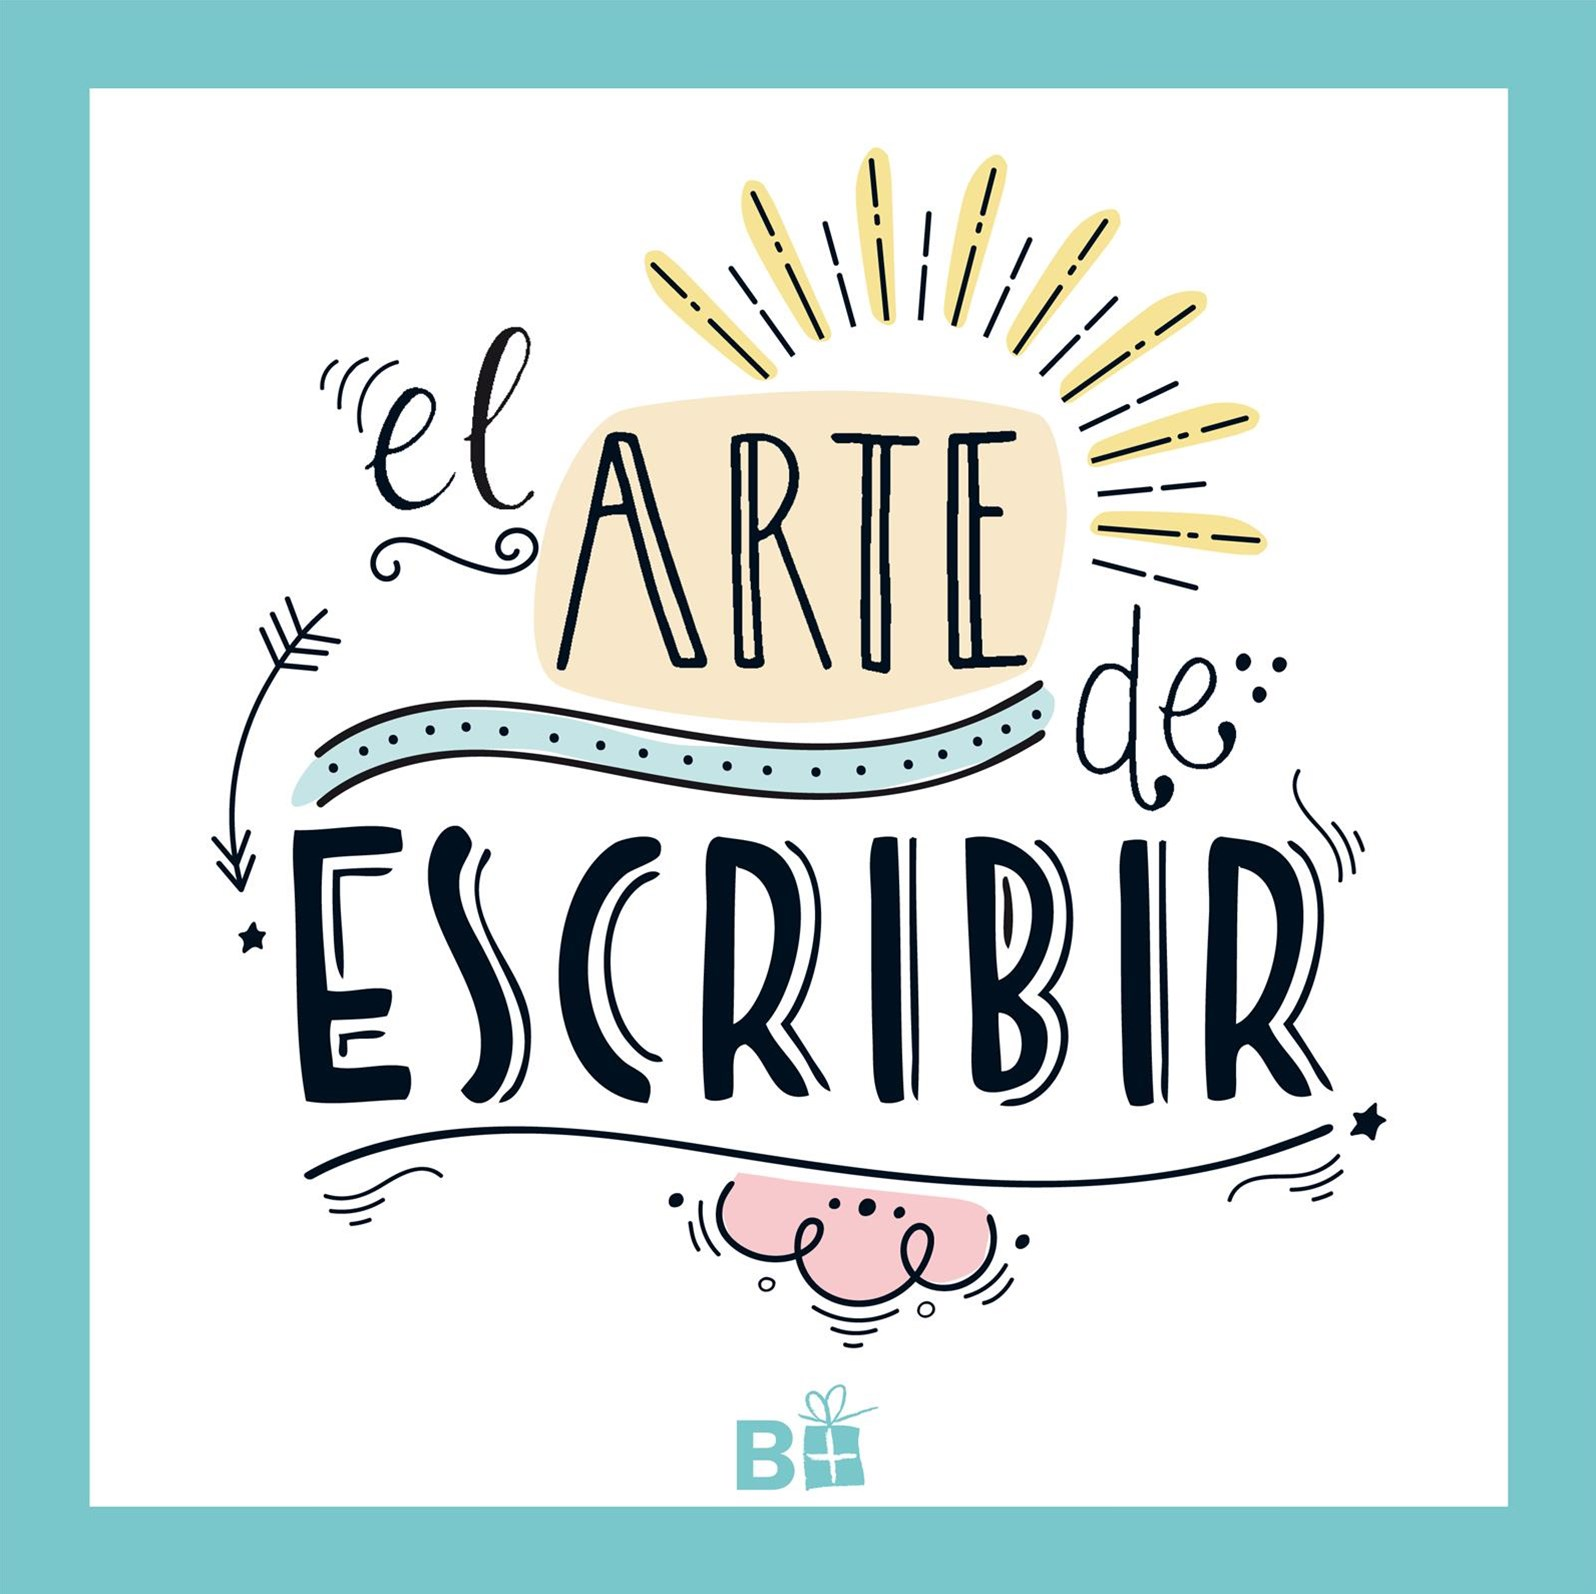 El arte de escribir/ The Art of Writing